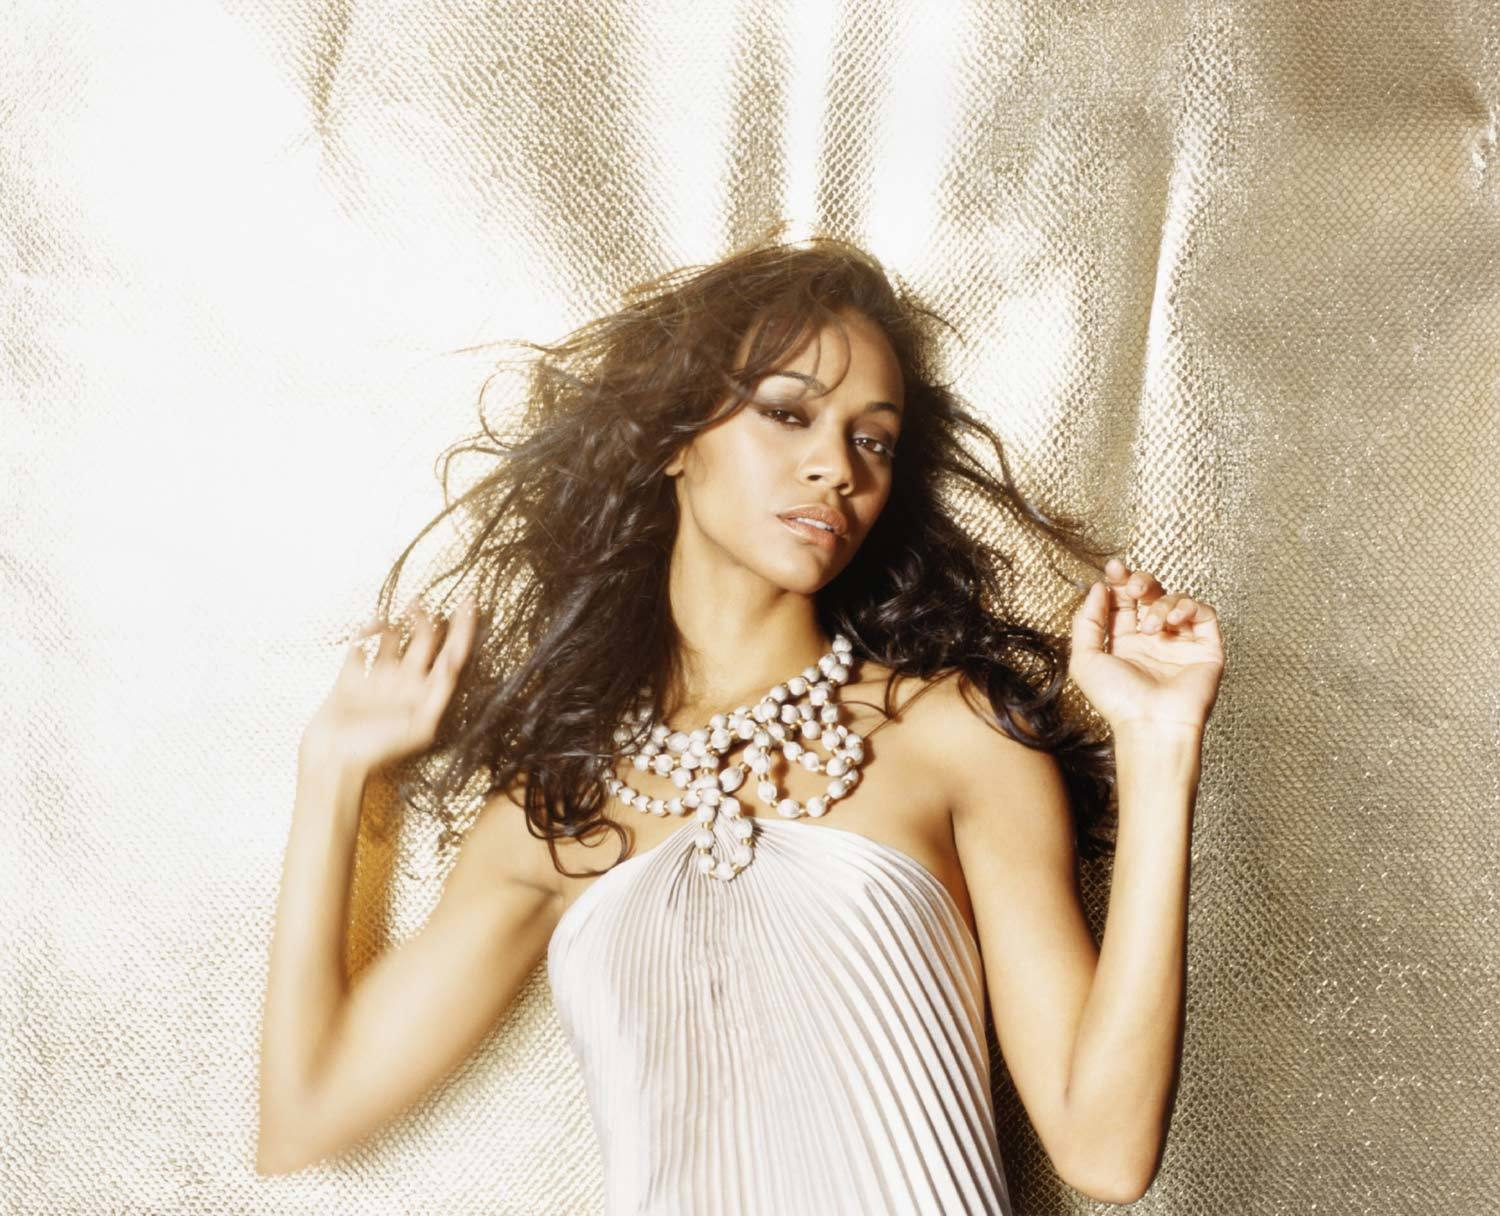 Zoe saldana Celebrity HD Wallpaper